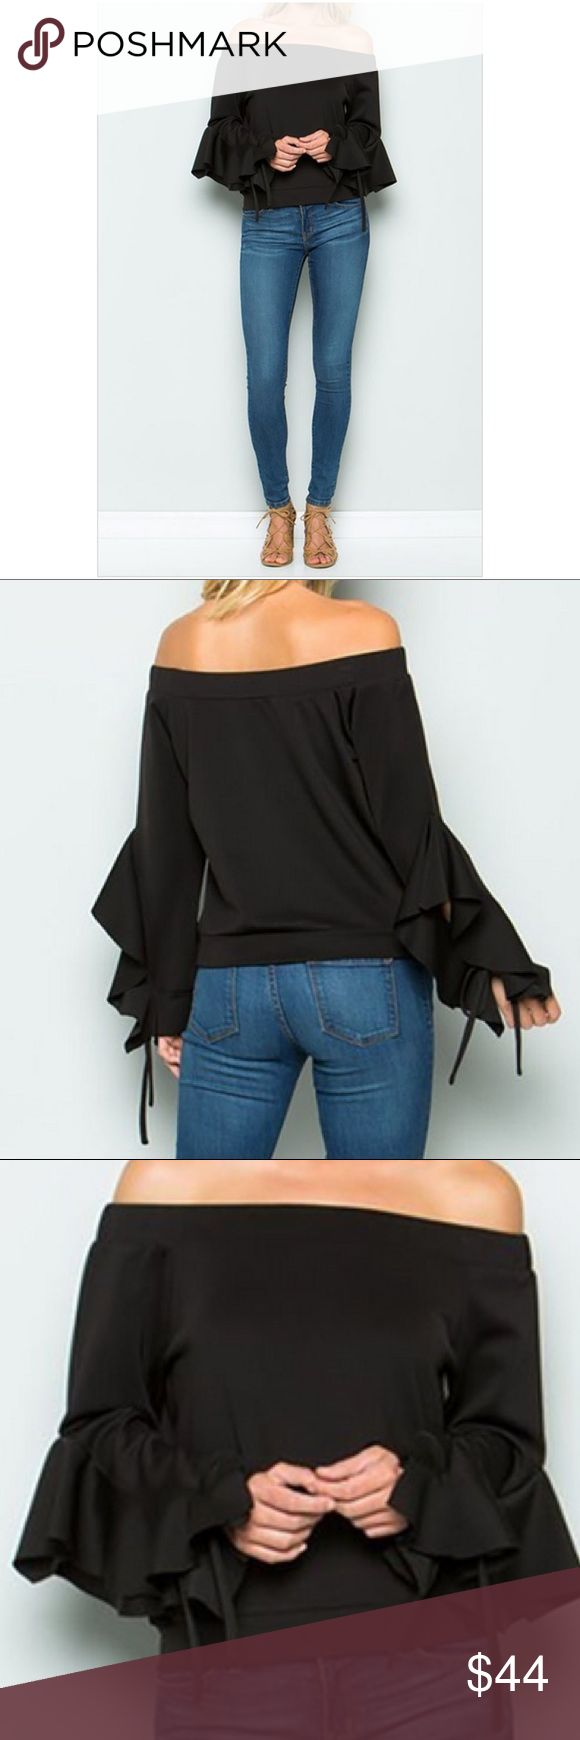 Off Shoulder Tie Up Sleeve Top Beautiful black off shoulder tie up sleeve top. 95% polyester 5% spandex. 2 colors: black and nude. I ship 3-5 business days. Price is firm. Tops Tees - Long Sleeve